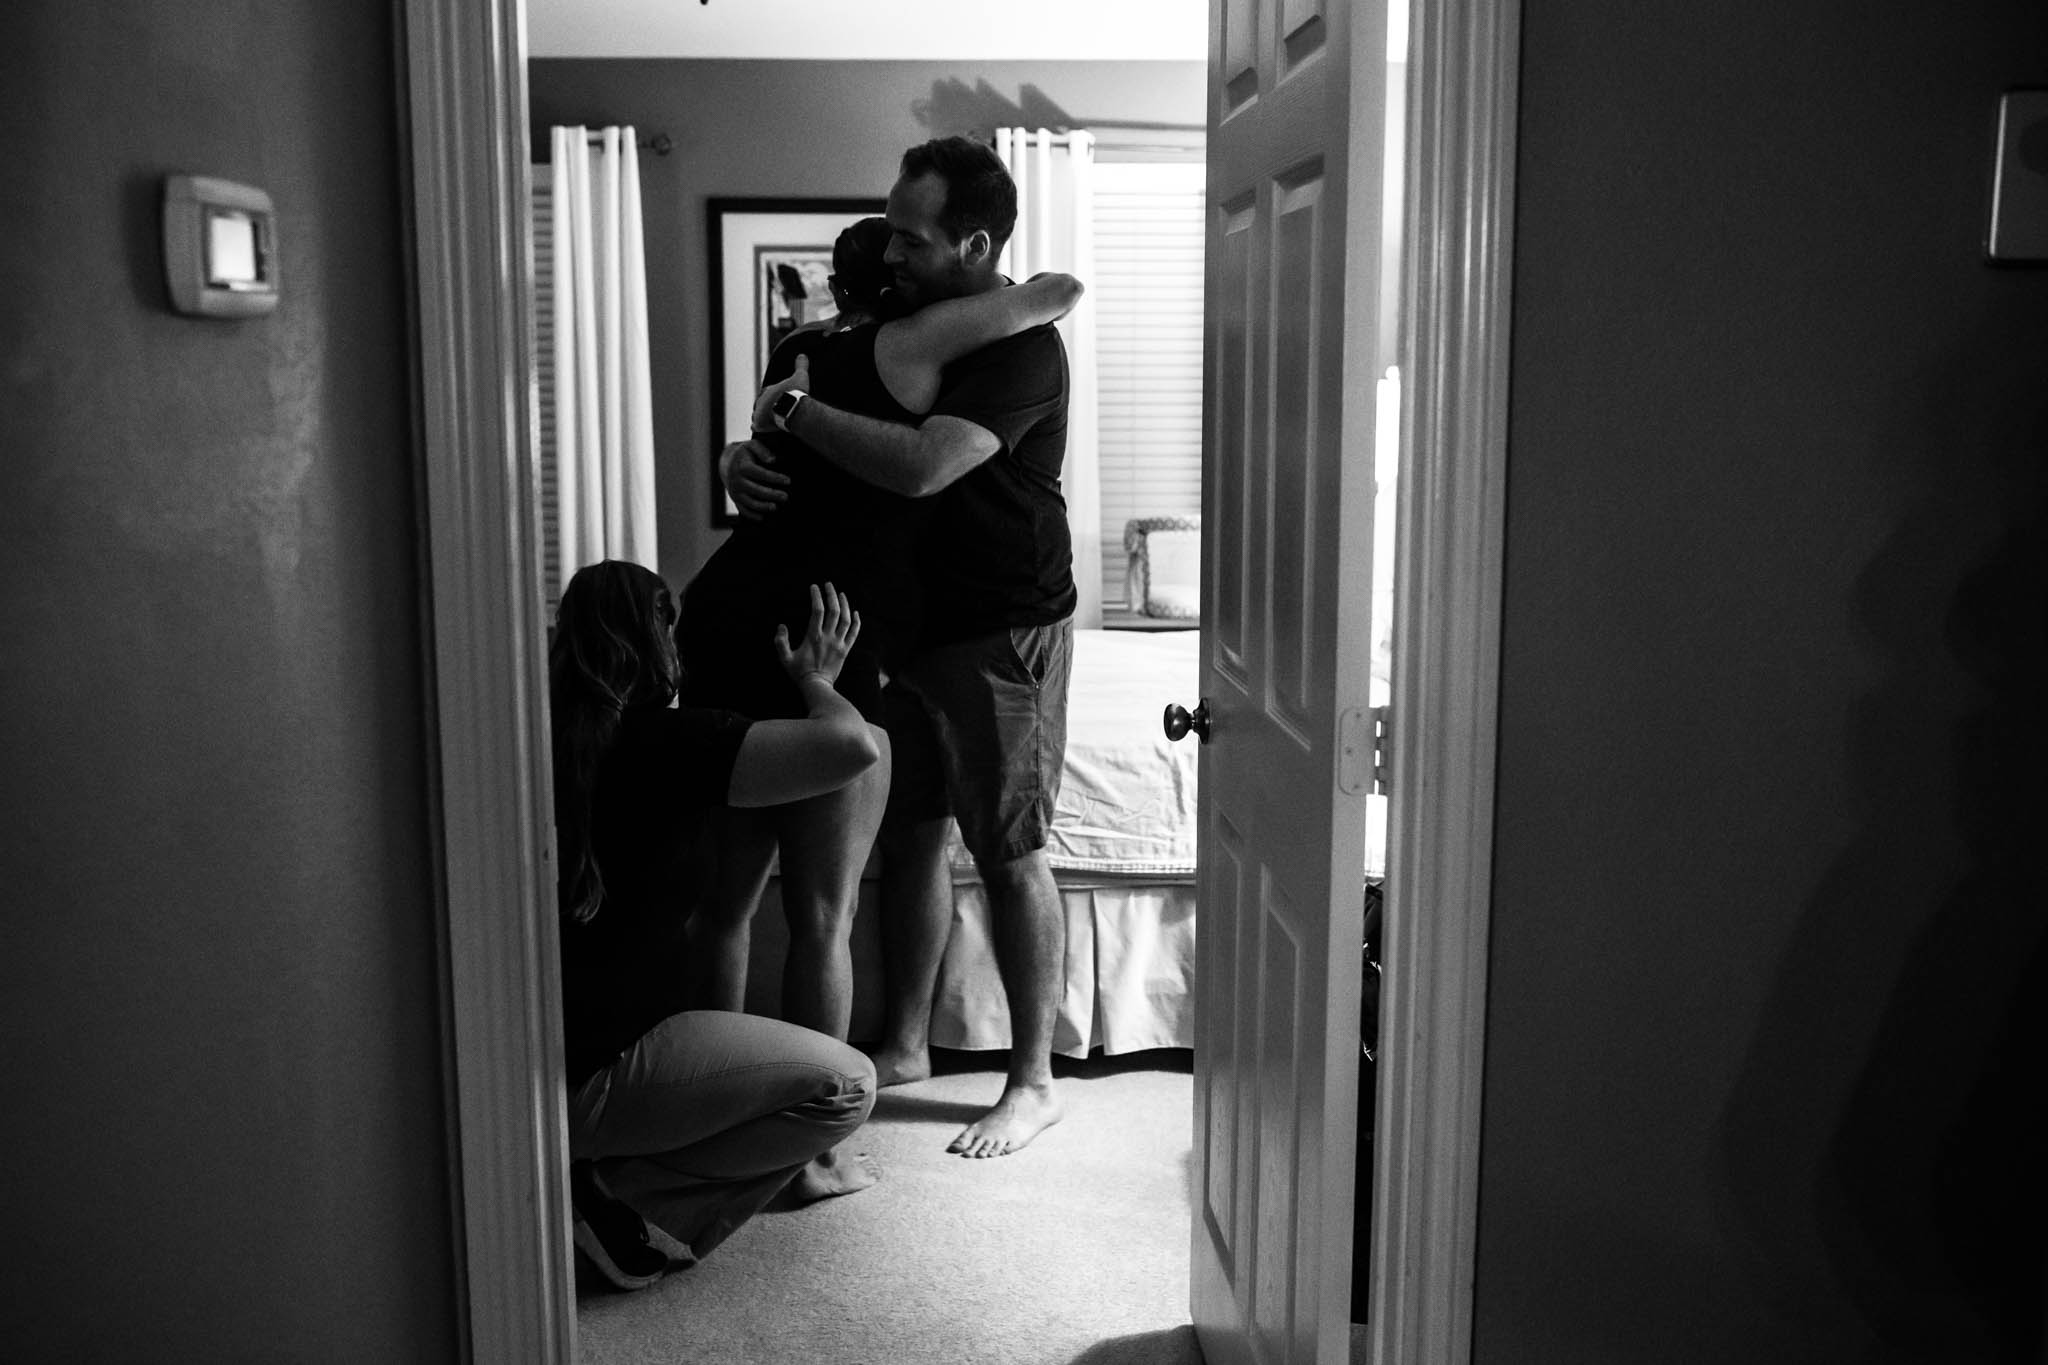 Lawren Rose Photography, a denton birth photographer takes an image peeking into a room where a mom is laboring holding onto her husband and doula applying counter pressure